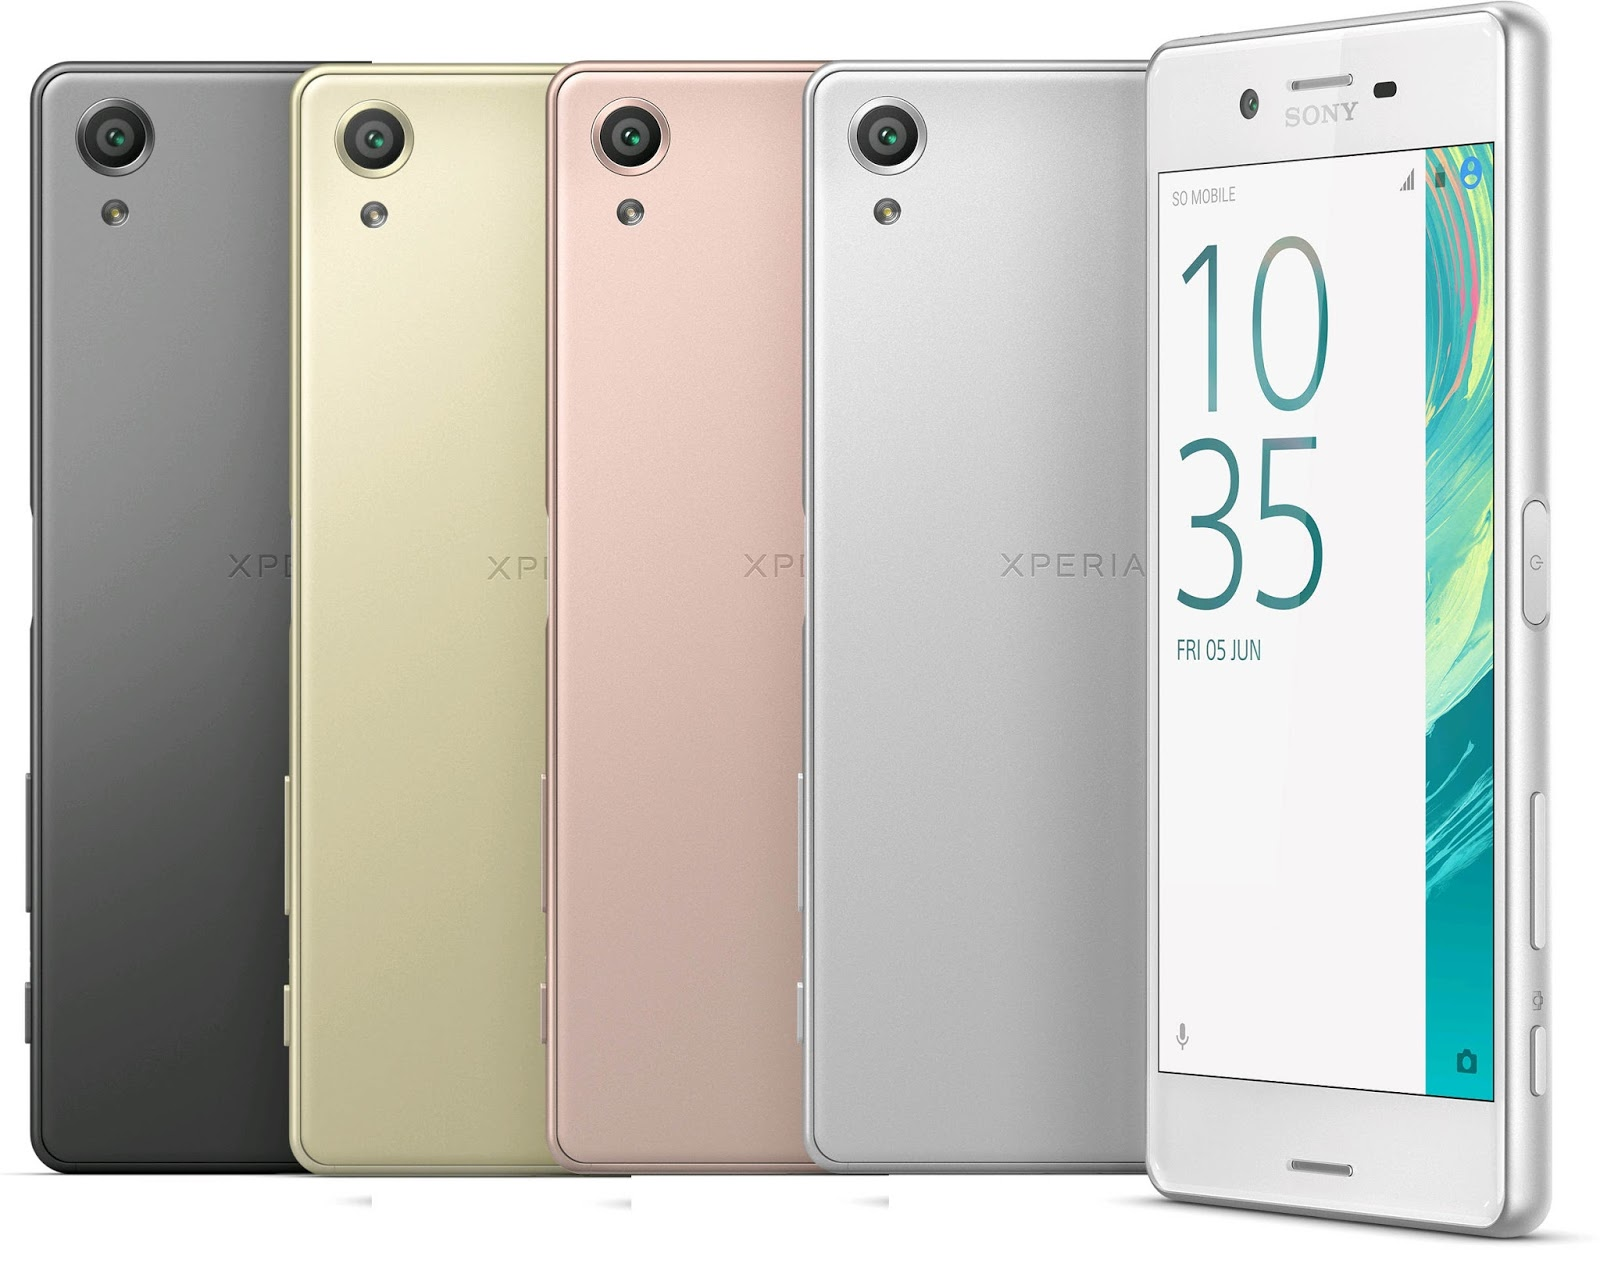 Sony Xperia X series smartphone price cut in India with 50 %